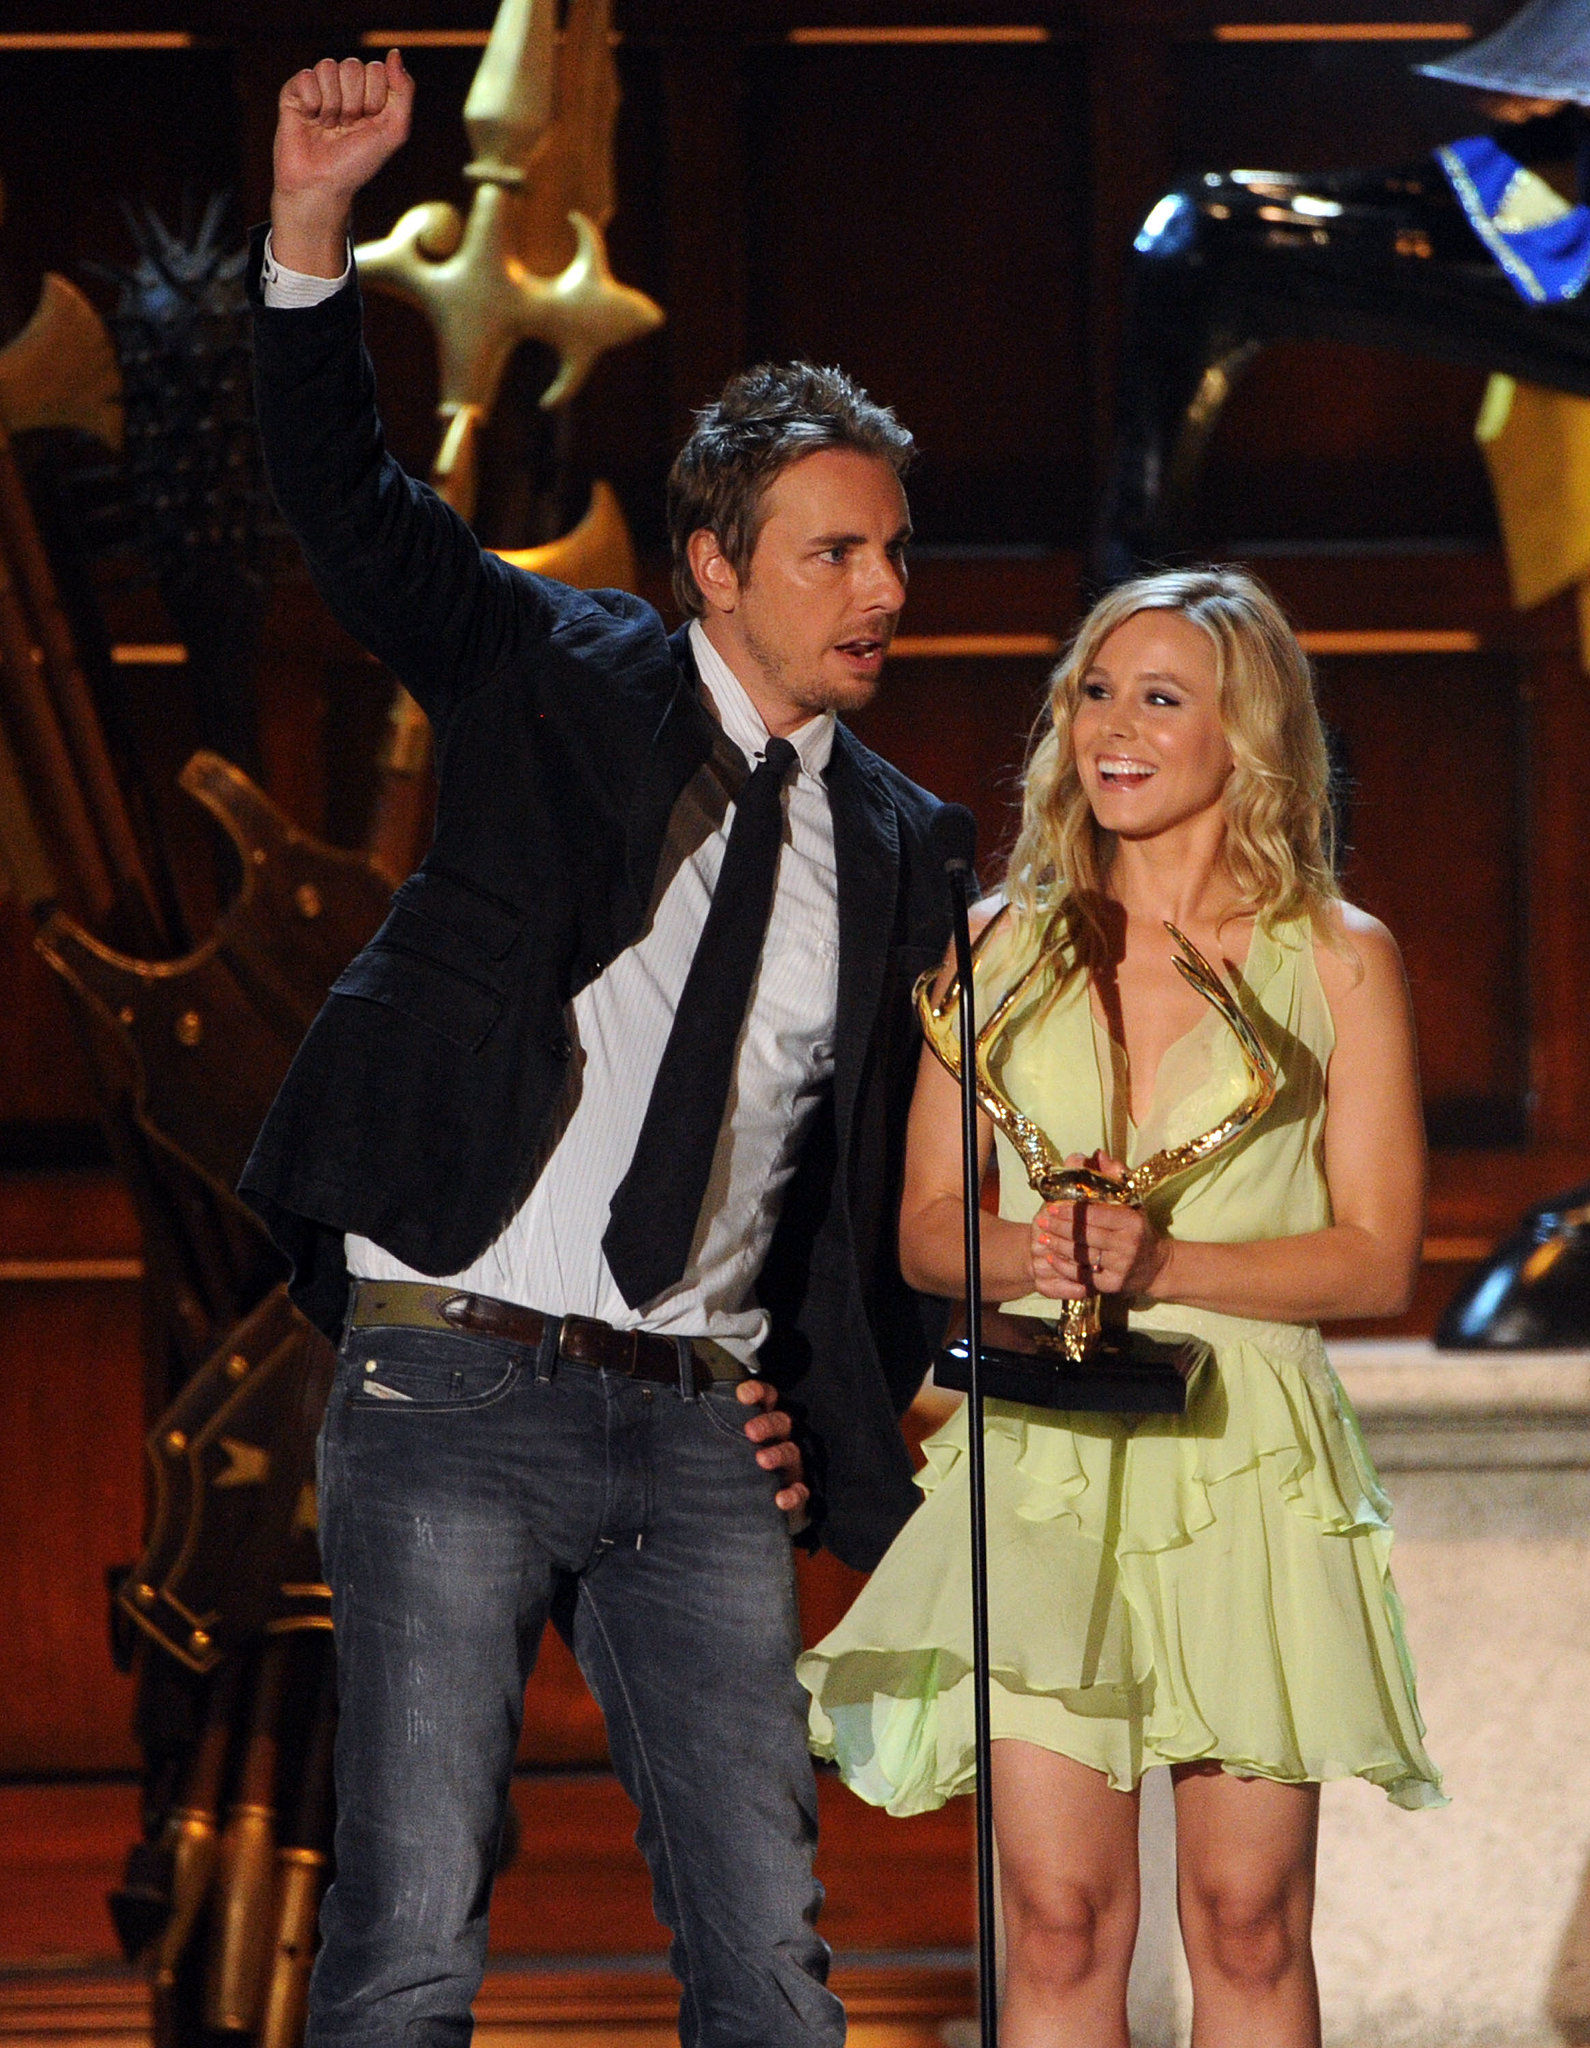 The cute couple took the stage at the June 2012 Guys Choice Awards.